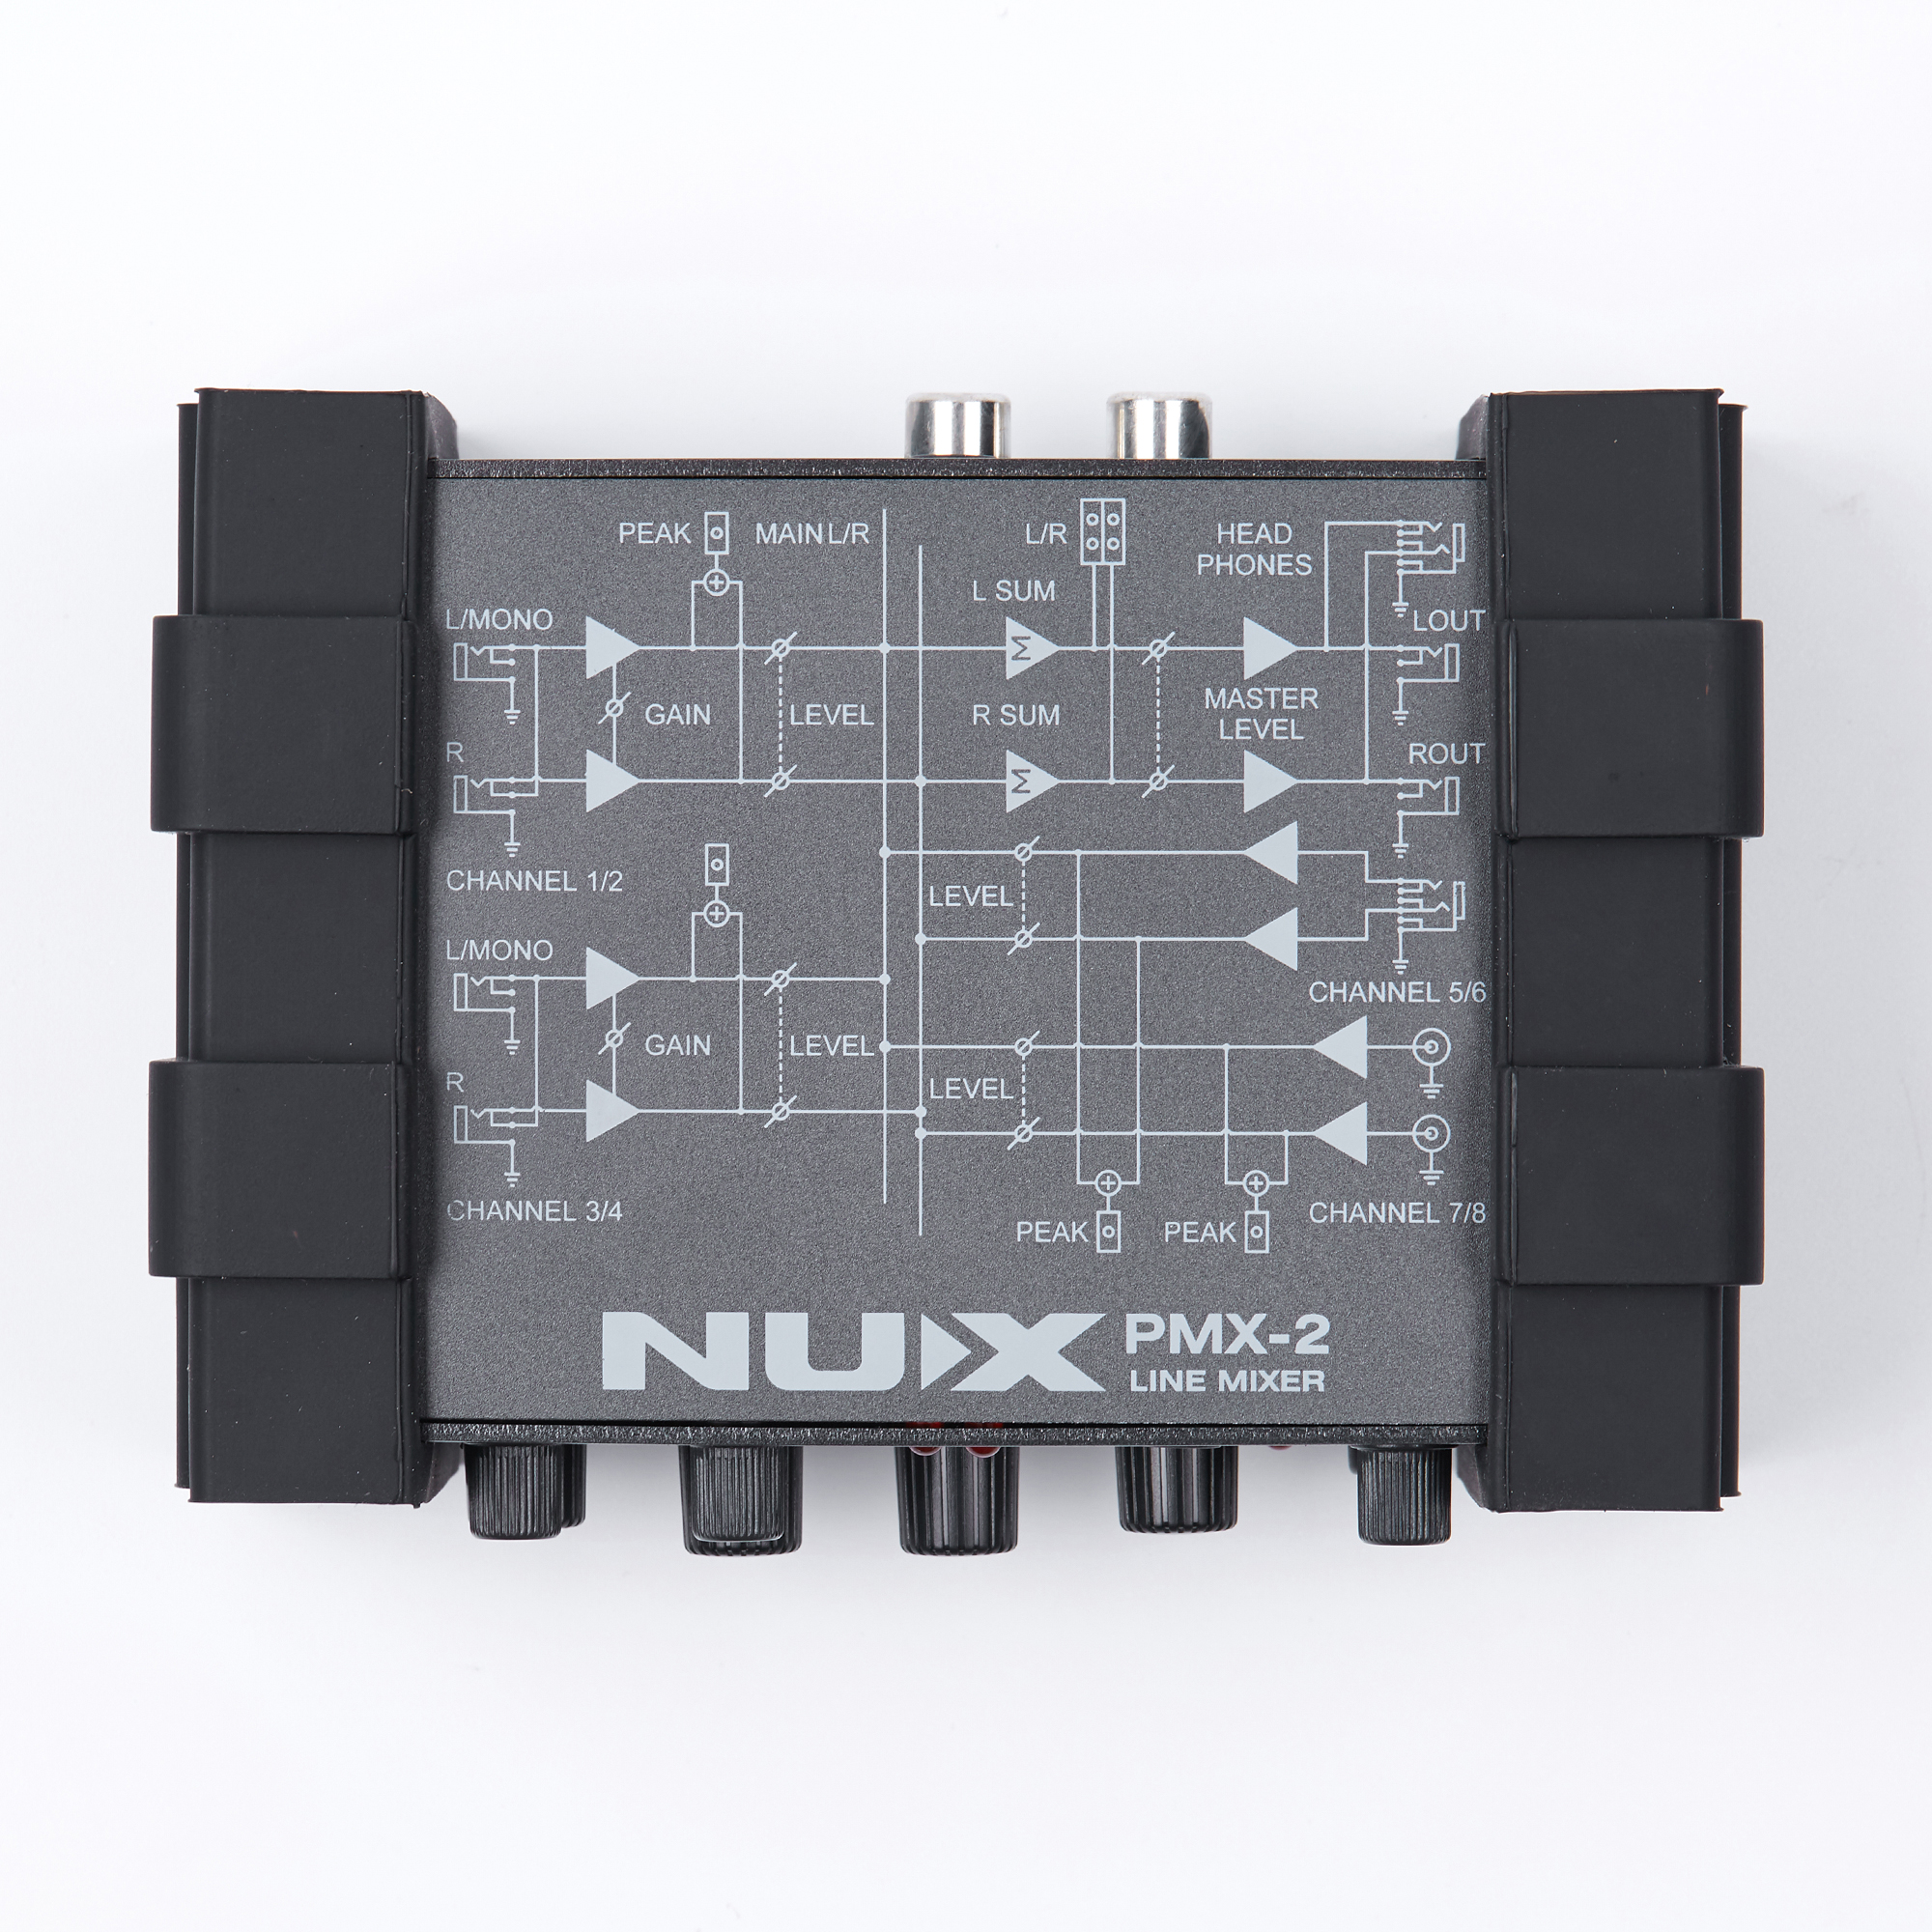 Gain Control 8 Inputs and 2 Outputs NUX PMX-2 Multi-Channel Mini Mixer 30 Musical Instruments Accessories for Guitar Bass Player nux pmx 2u electric guitar bass usb audio interface i o line mixer 6 inputs